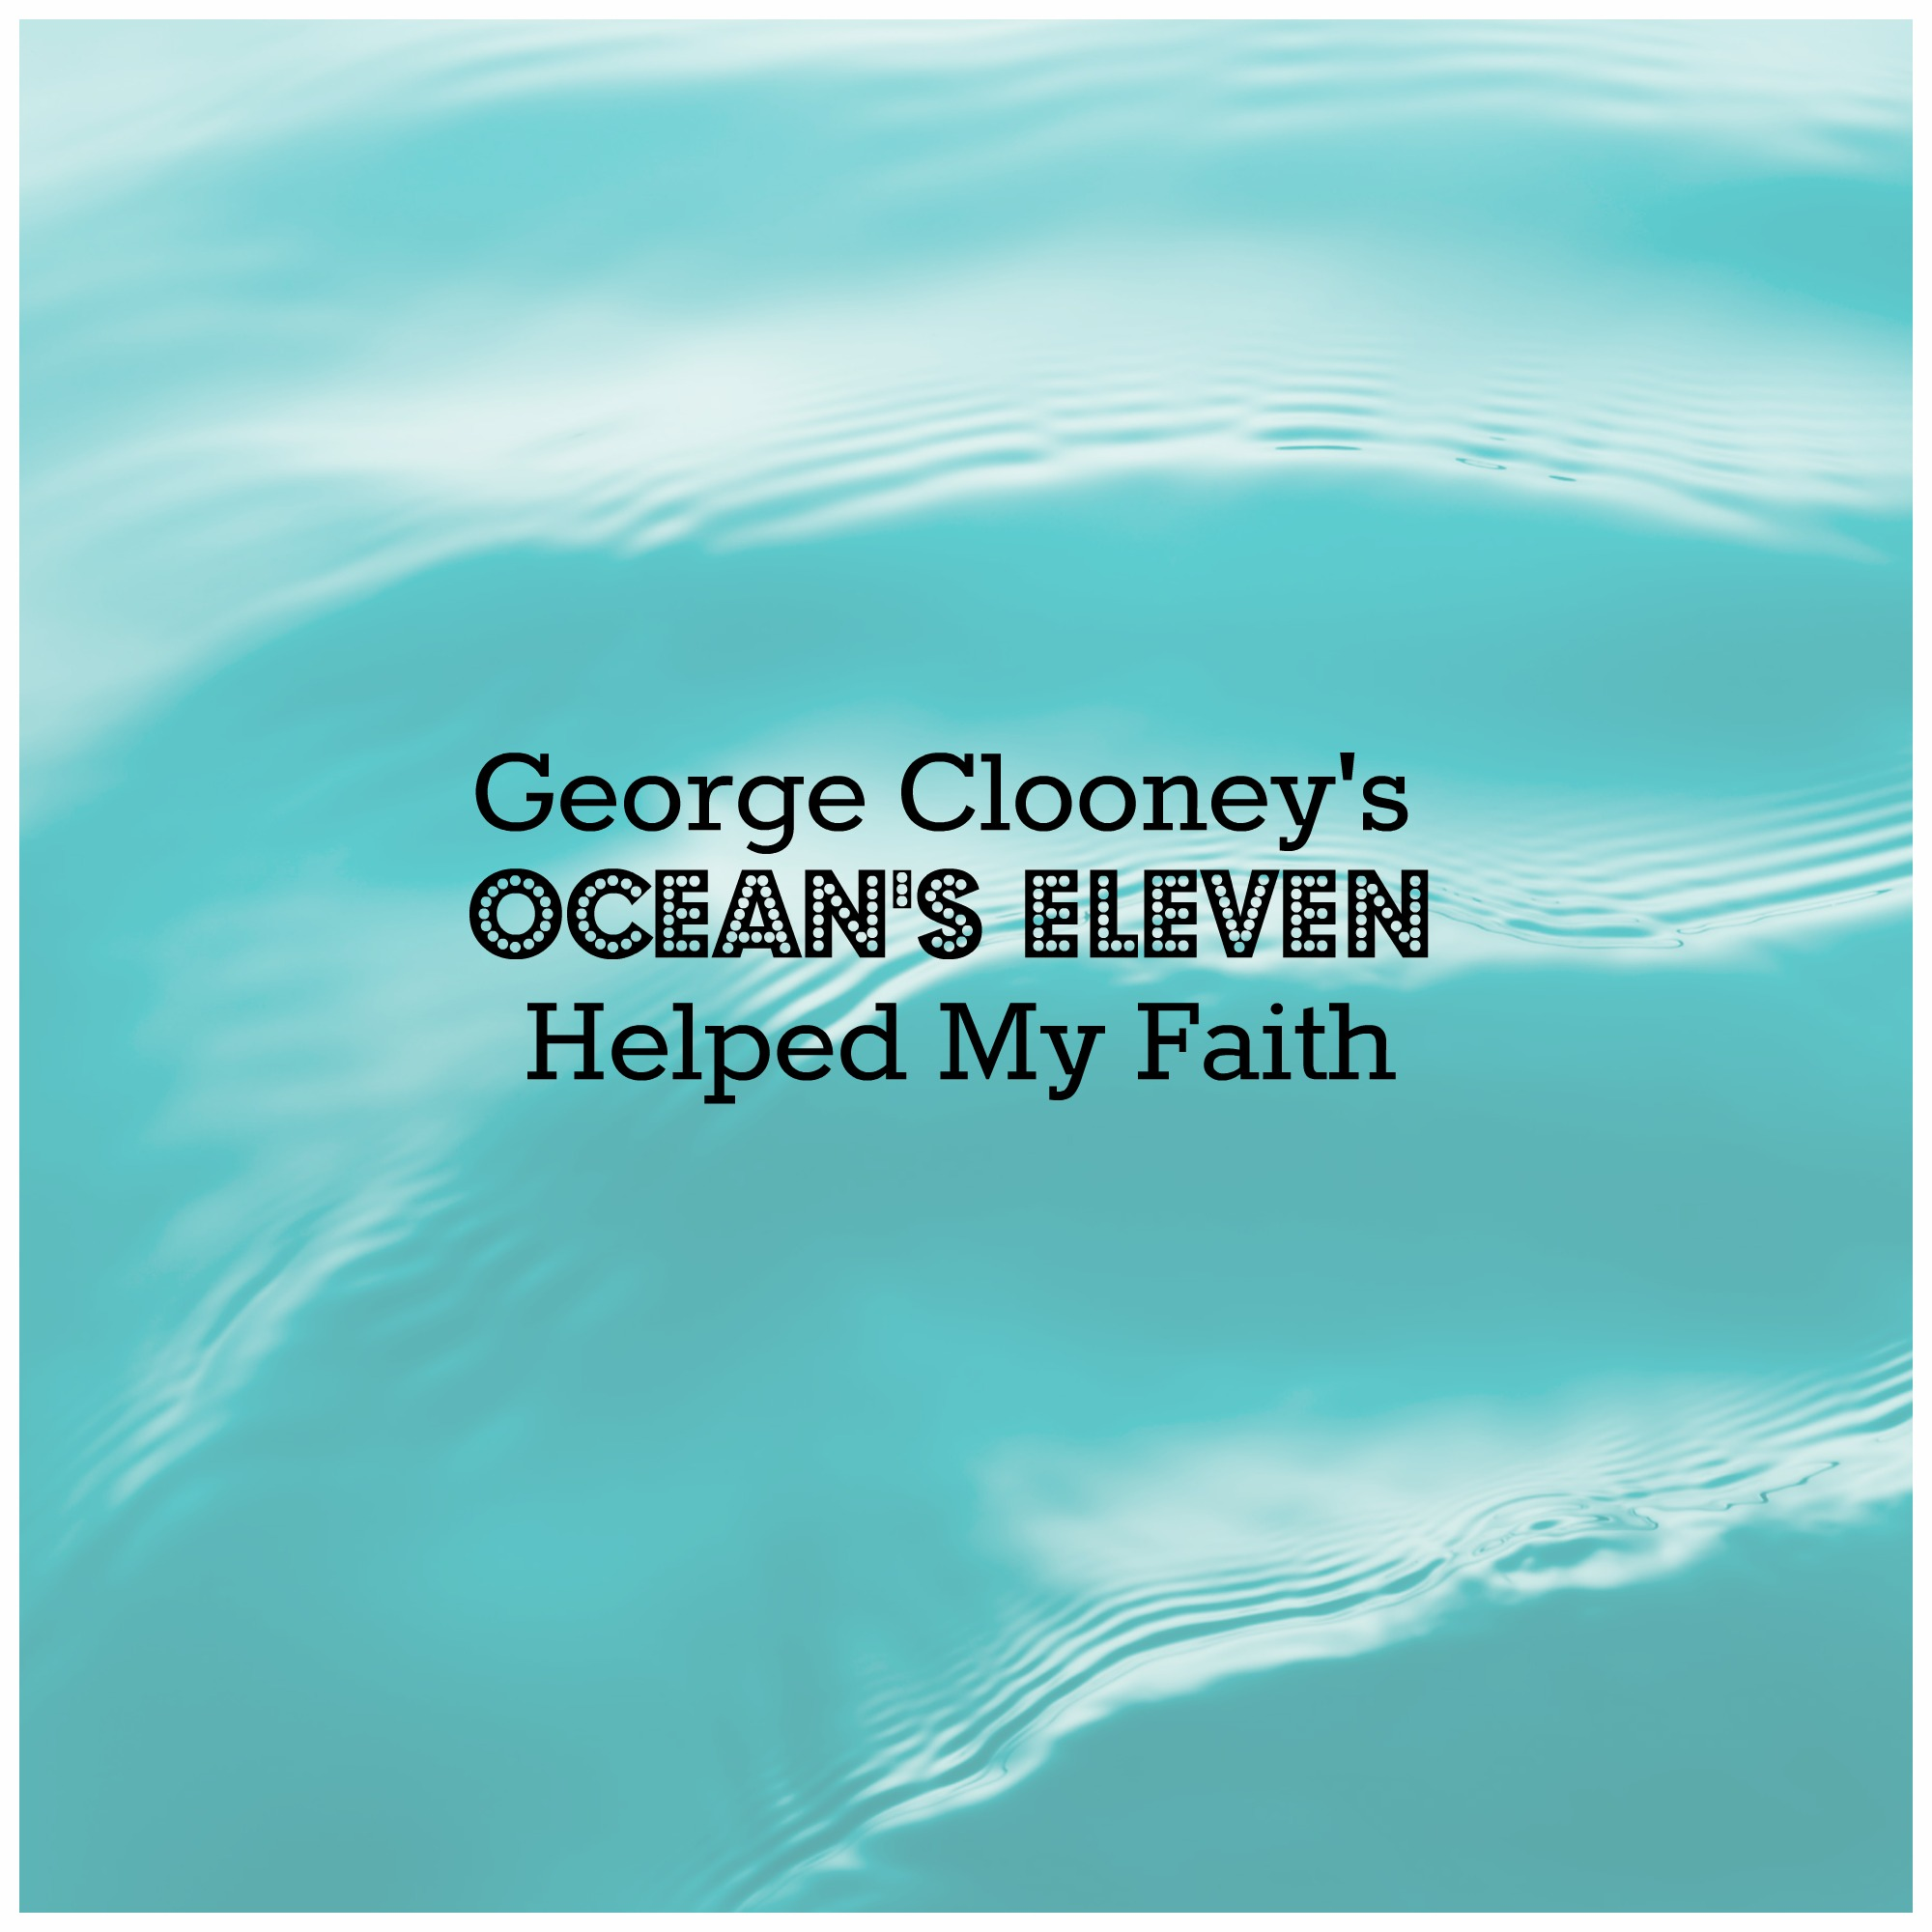 George Cloone's Ocean's Eleven Helped My Faith